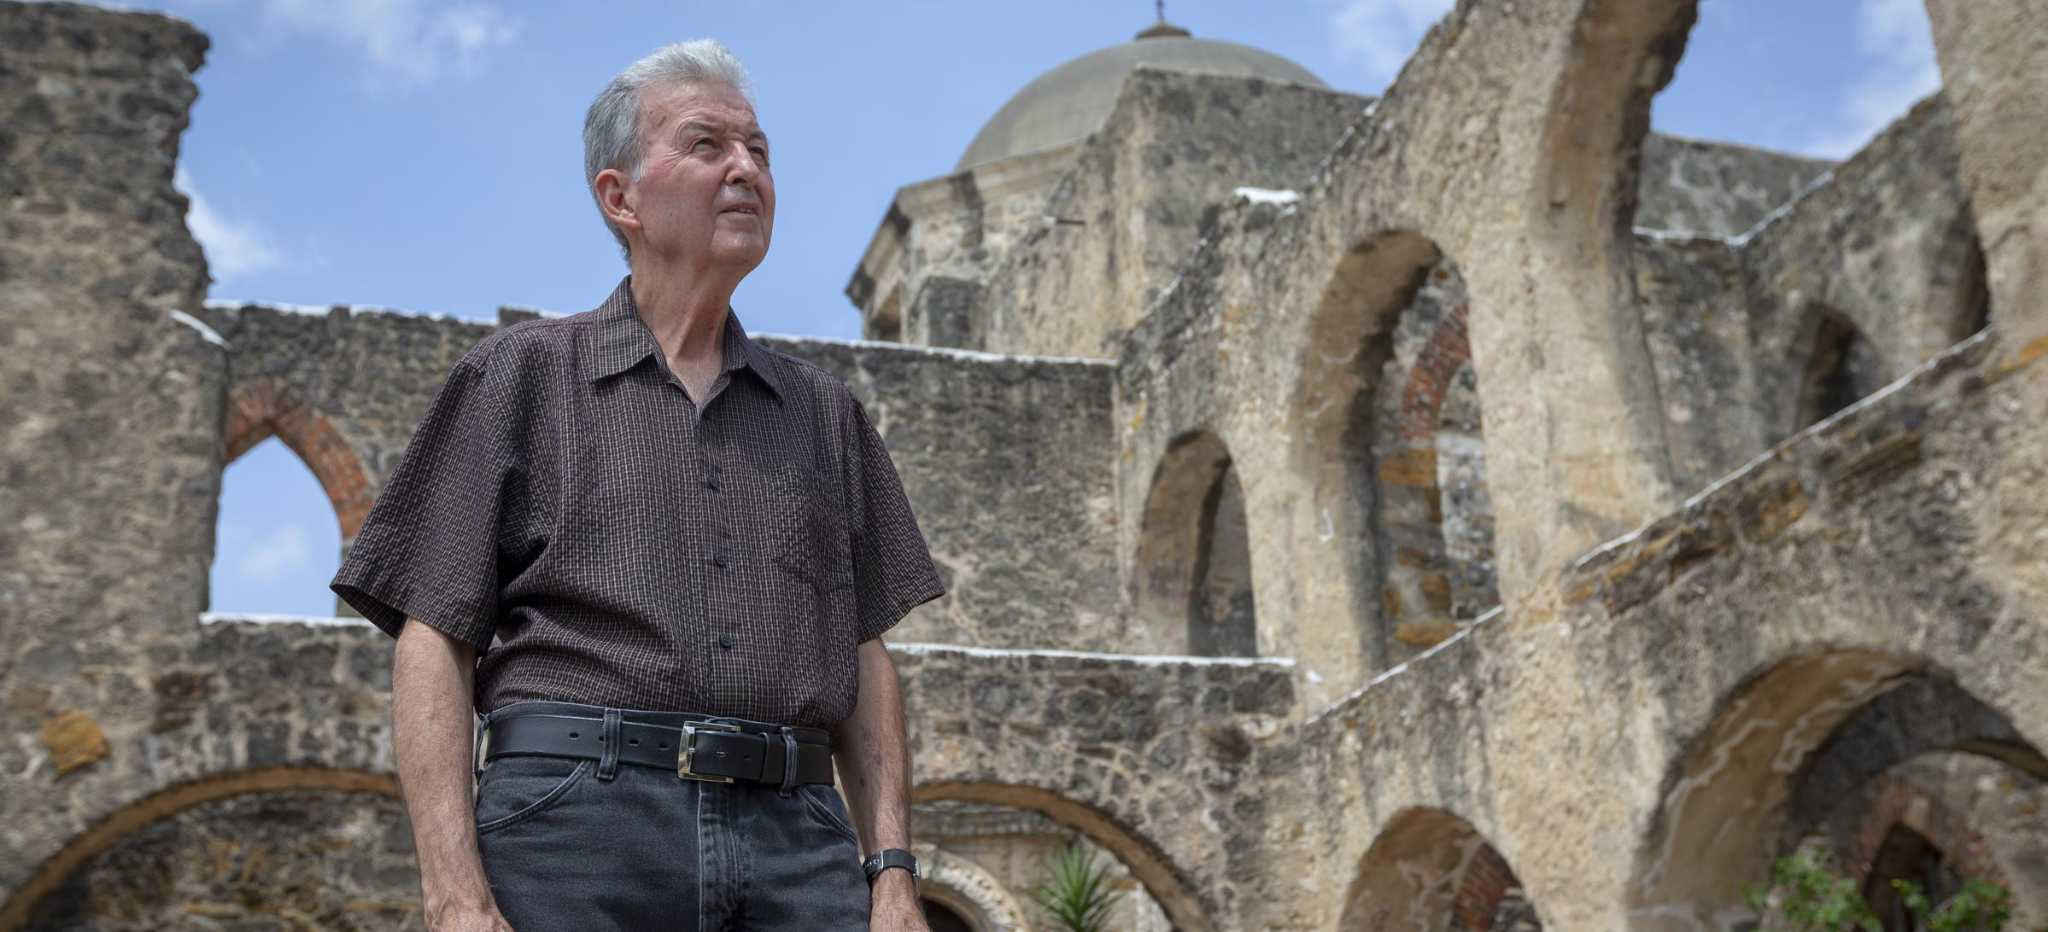 UTSA historian recalls when San Antonio was Texas' most important city